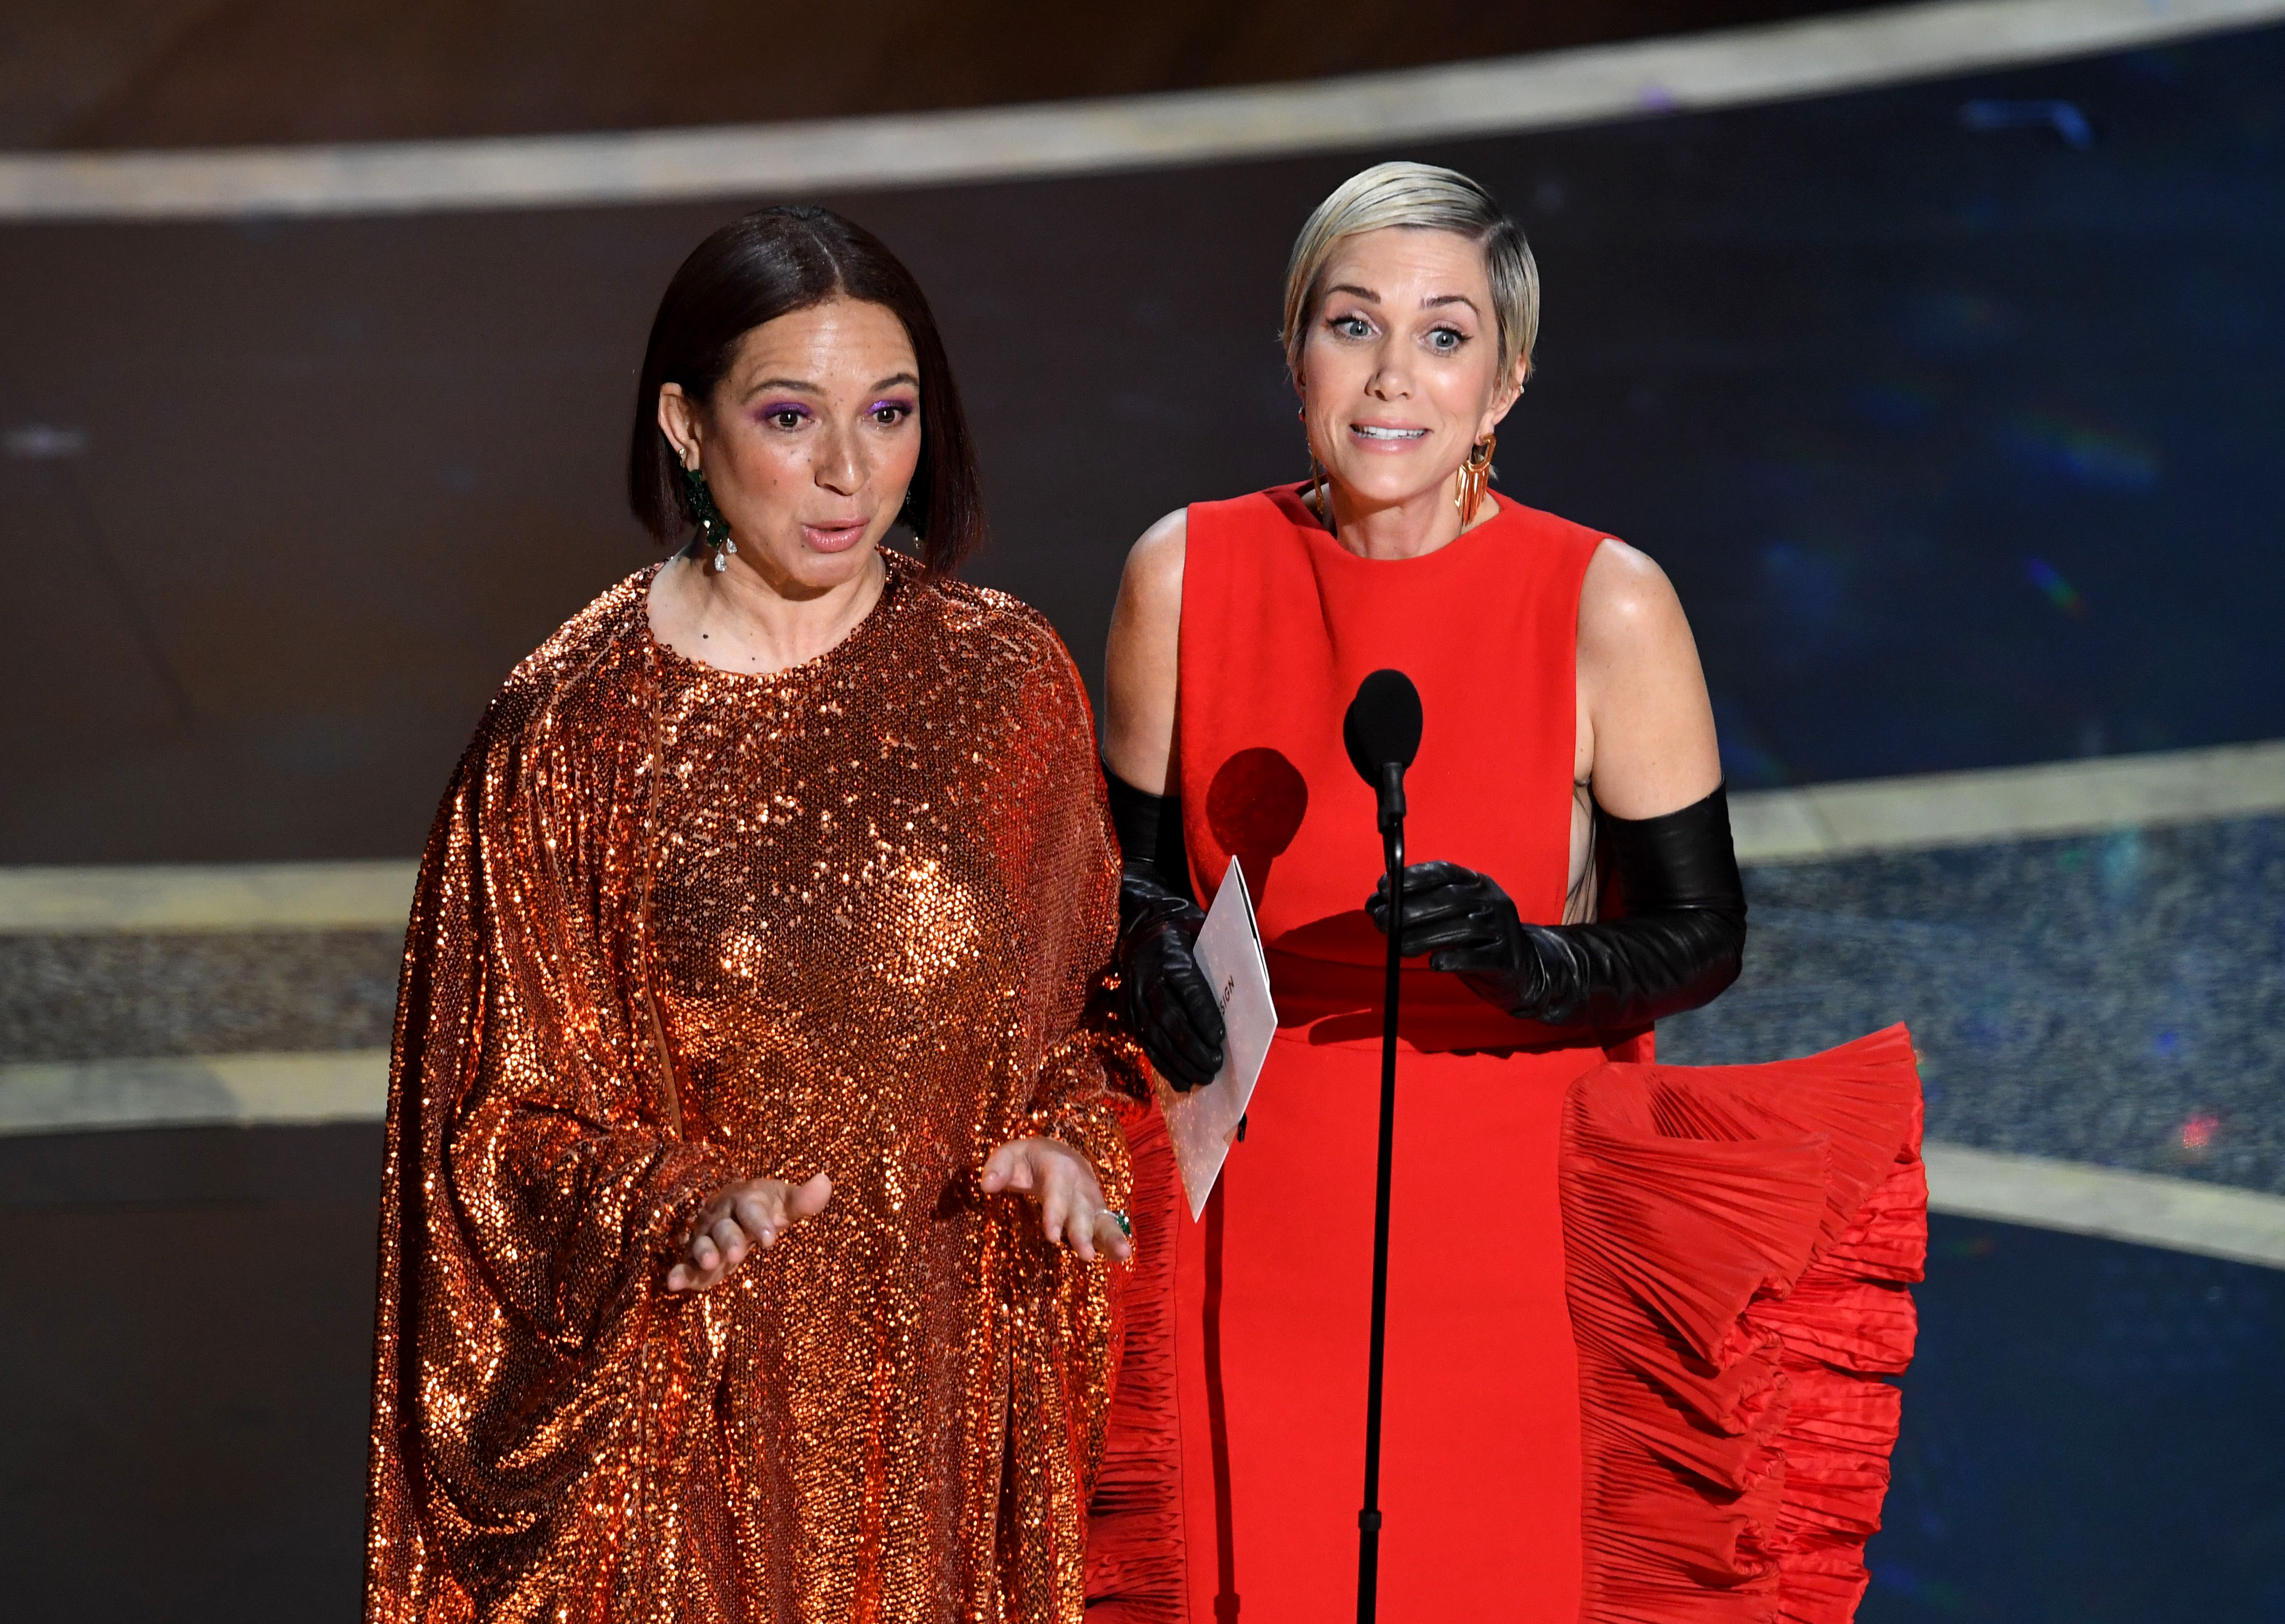 Maya Rudolph and Kristen Wiig at the 2020 Oscars.